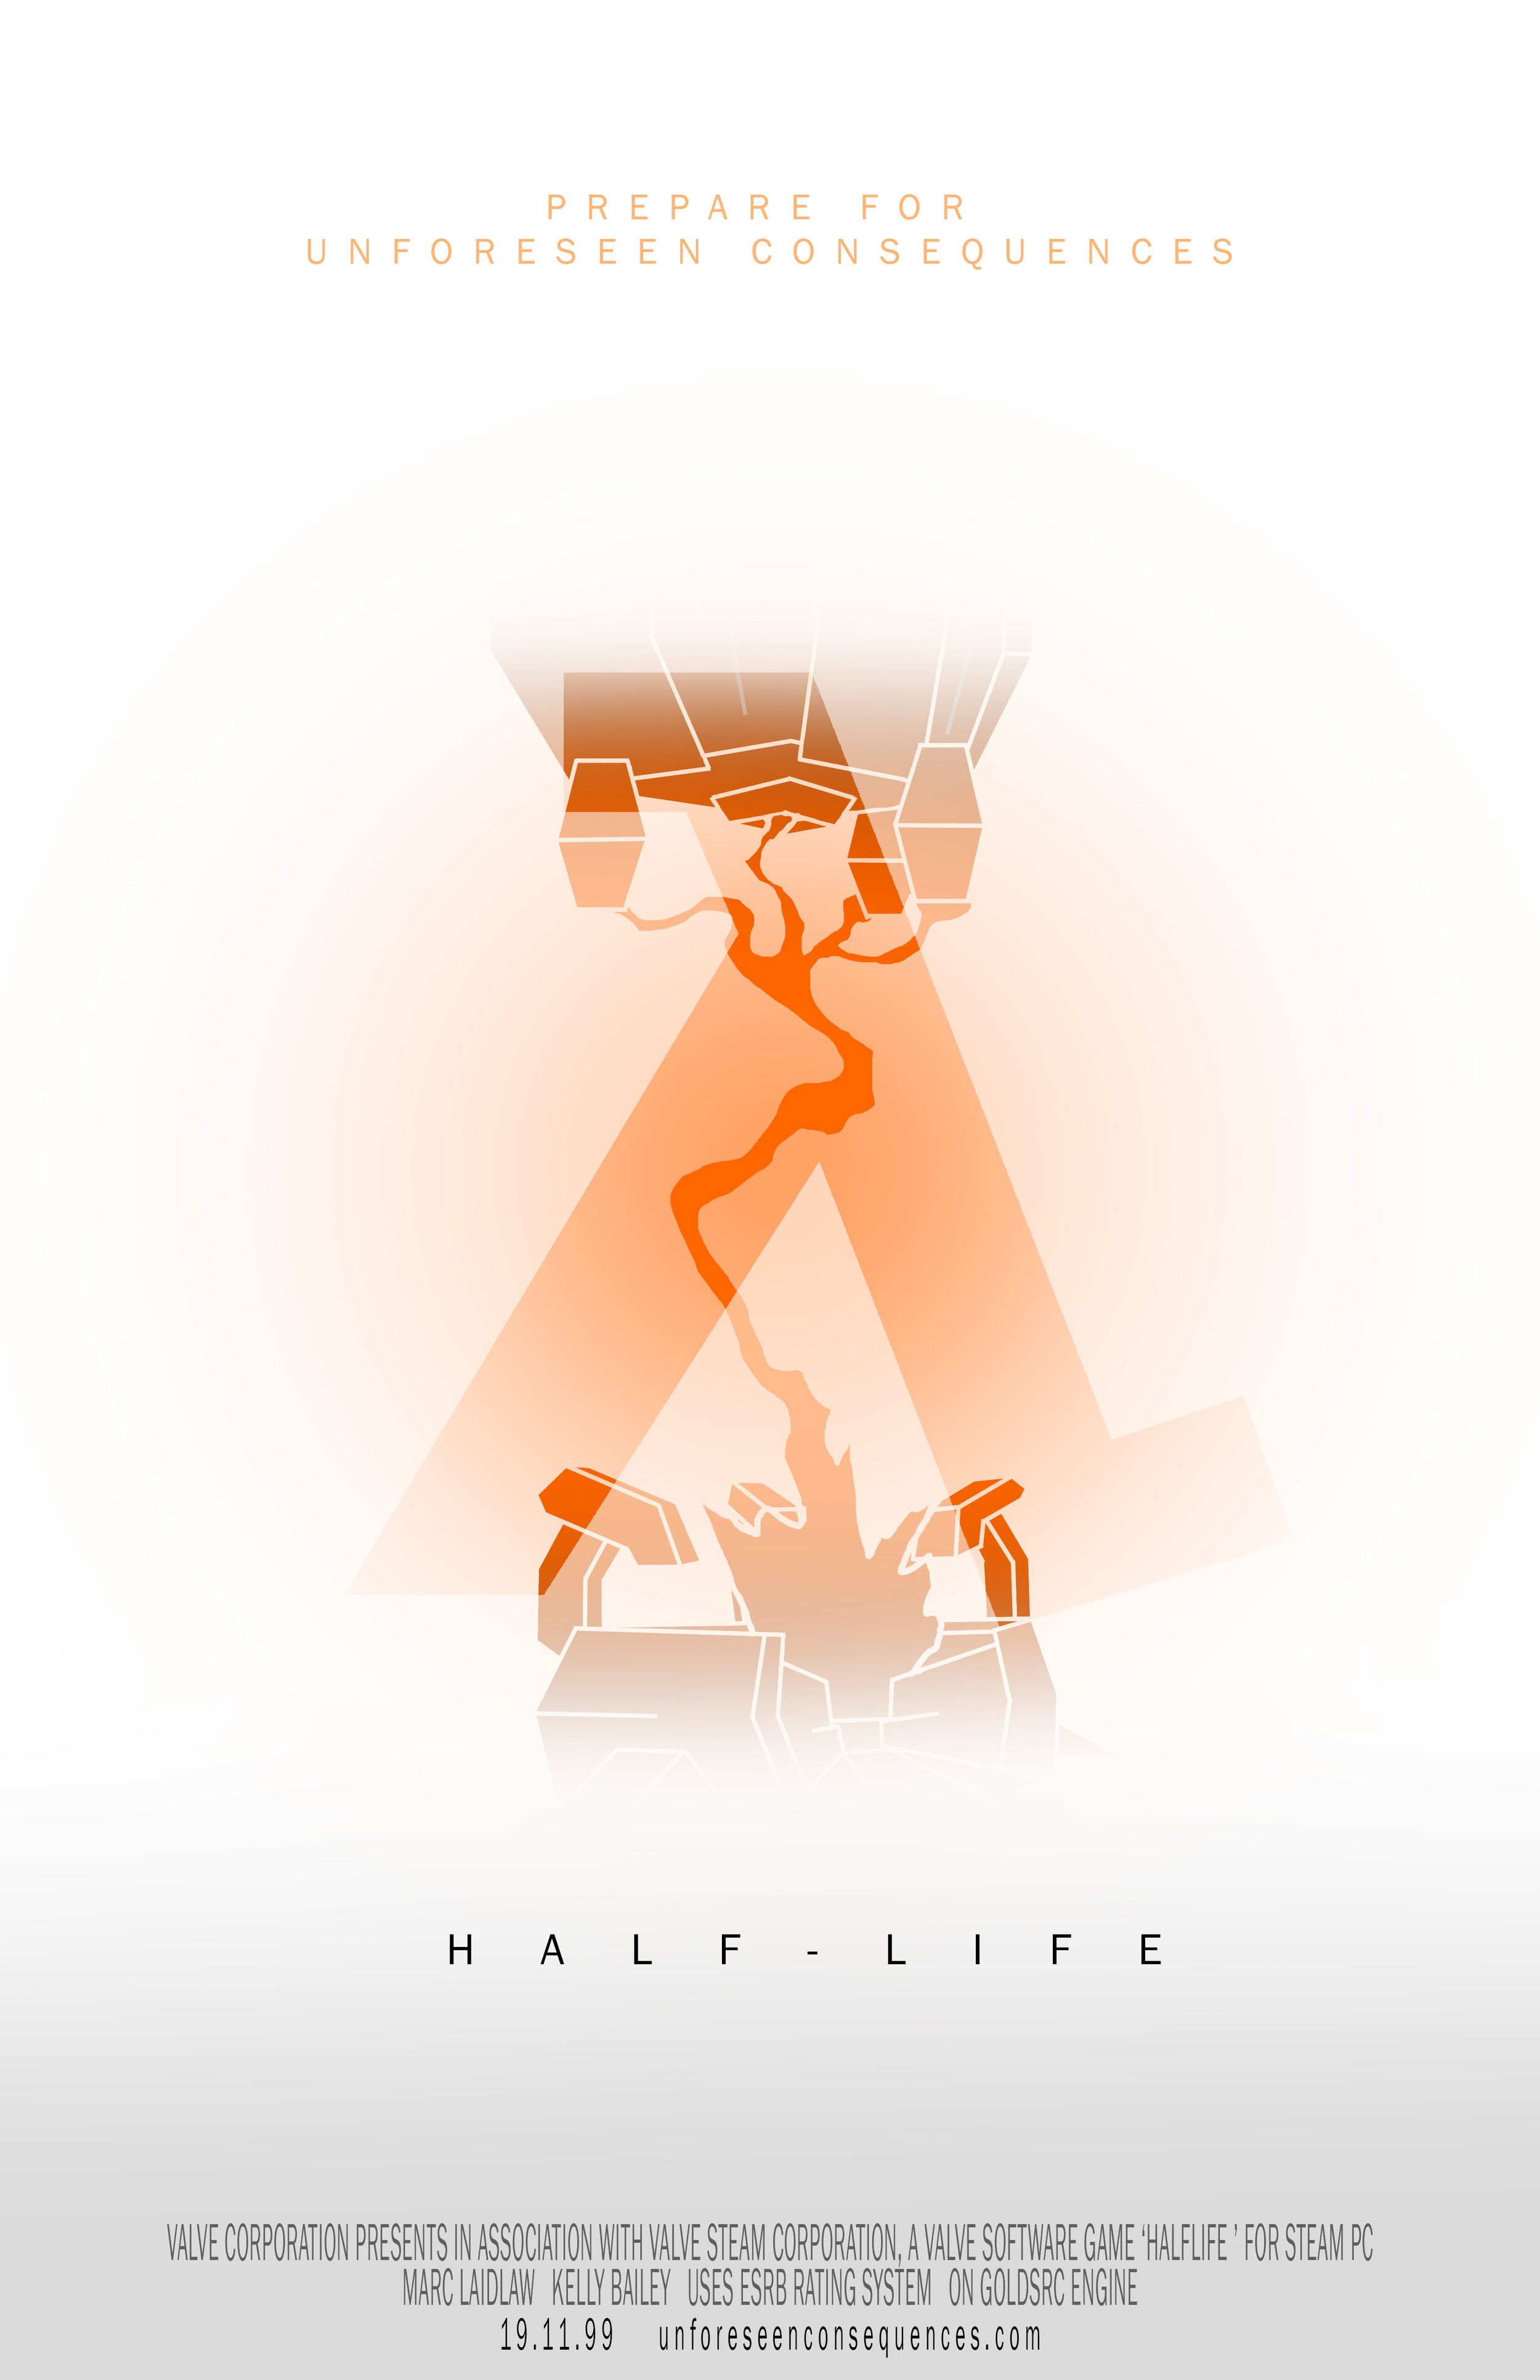 Half-Life Poster Series - Photoshop Composition and Thematic Presentation